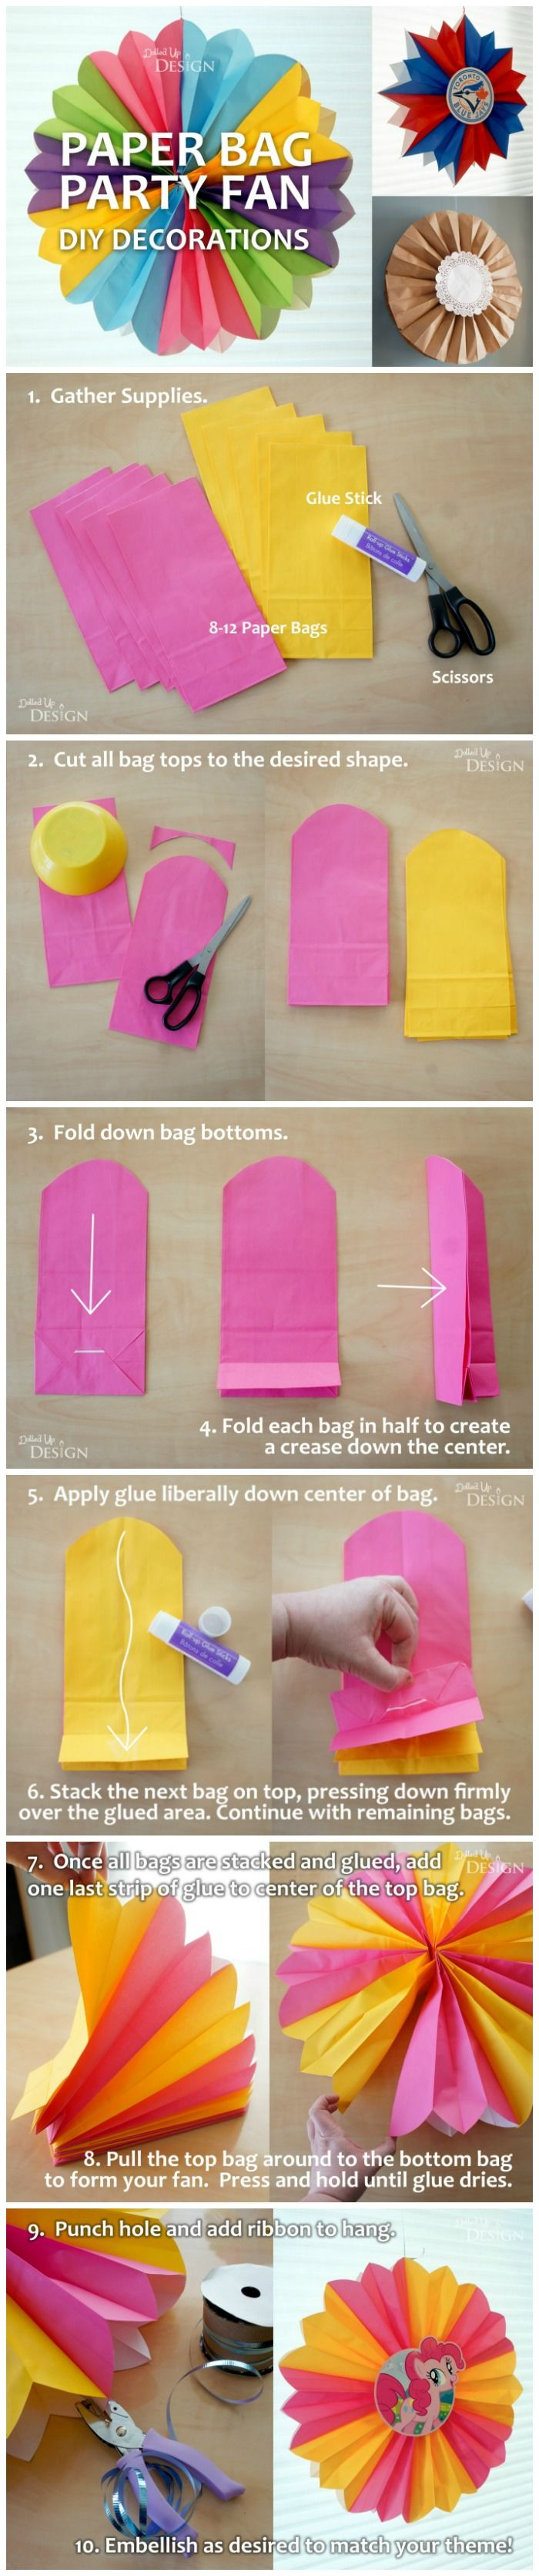 DIY Paper Bag Party Fans - these DIY party decorations are so clever!